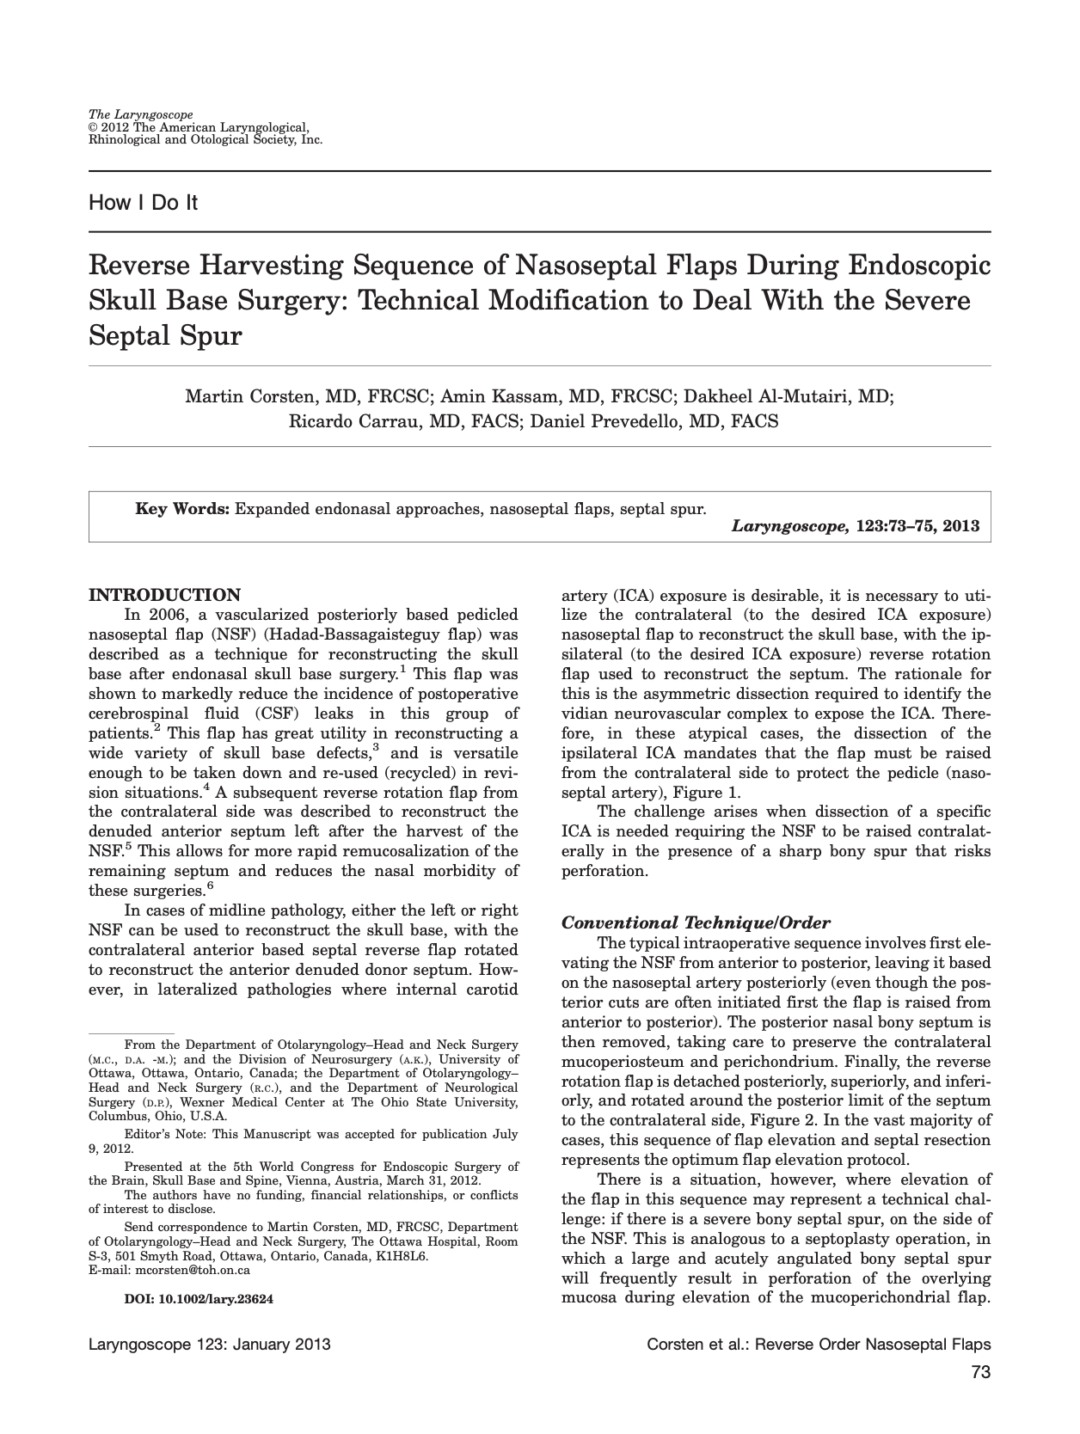 Reverse Harvesting Sequence of Nasoseptal Flaps During Endoscopic Skull Base Surgery: Technical Modification to Deal With the Severe Septal Spur